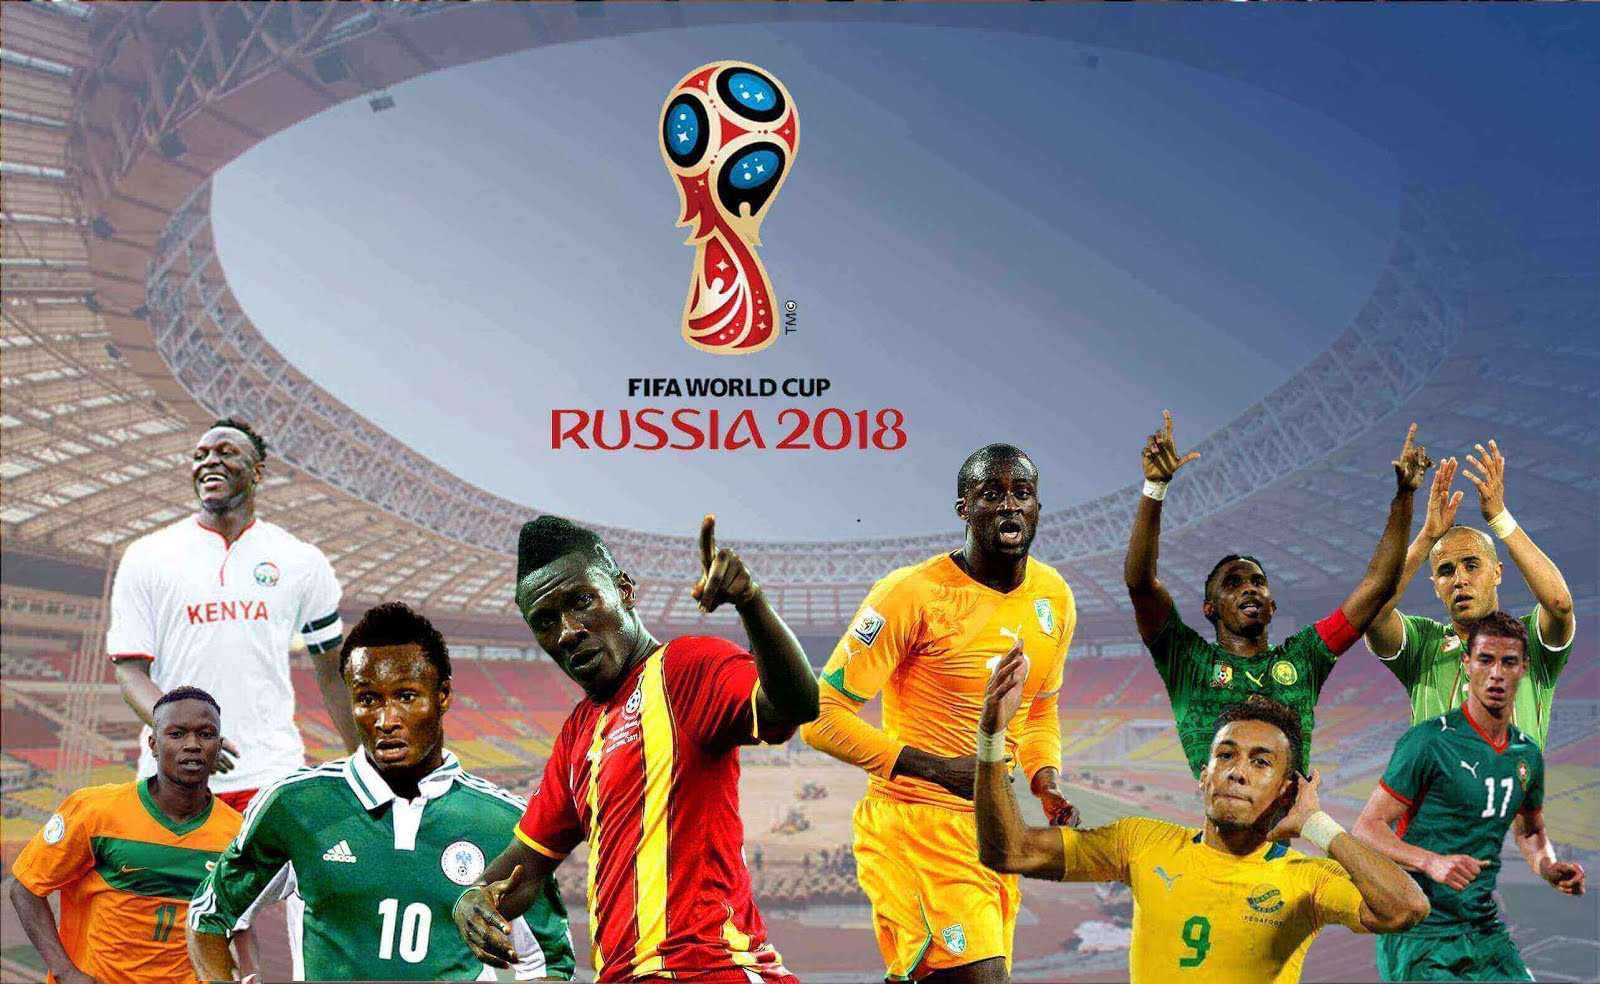 How to Watch FIFA World Cup 2018 online in Africa